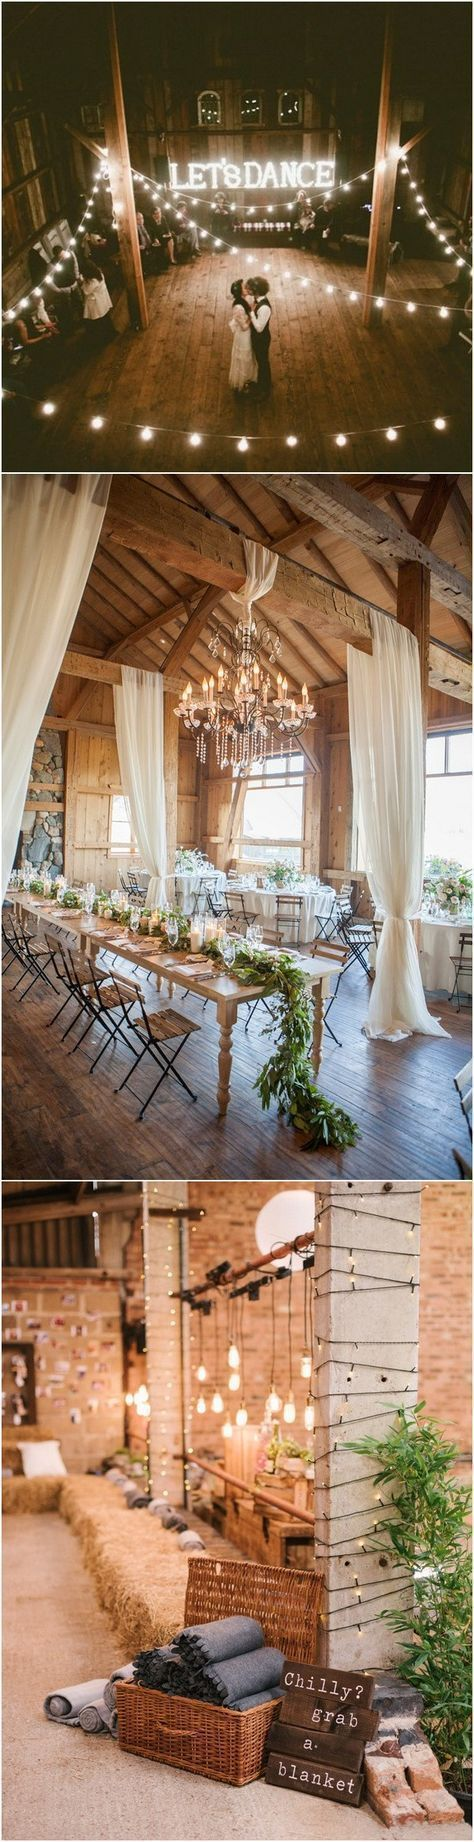 Wedding room decoration ideas 2018   Gorgeous Ideas for a Rustic Barn Wedding in   wedding